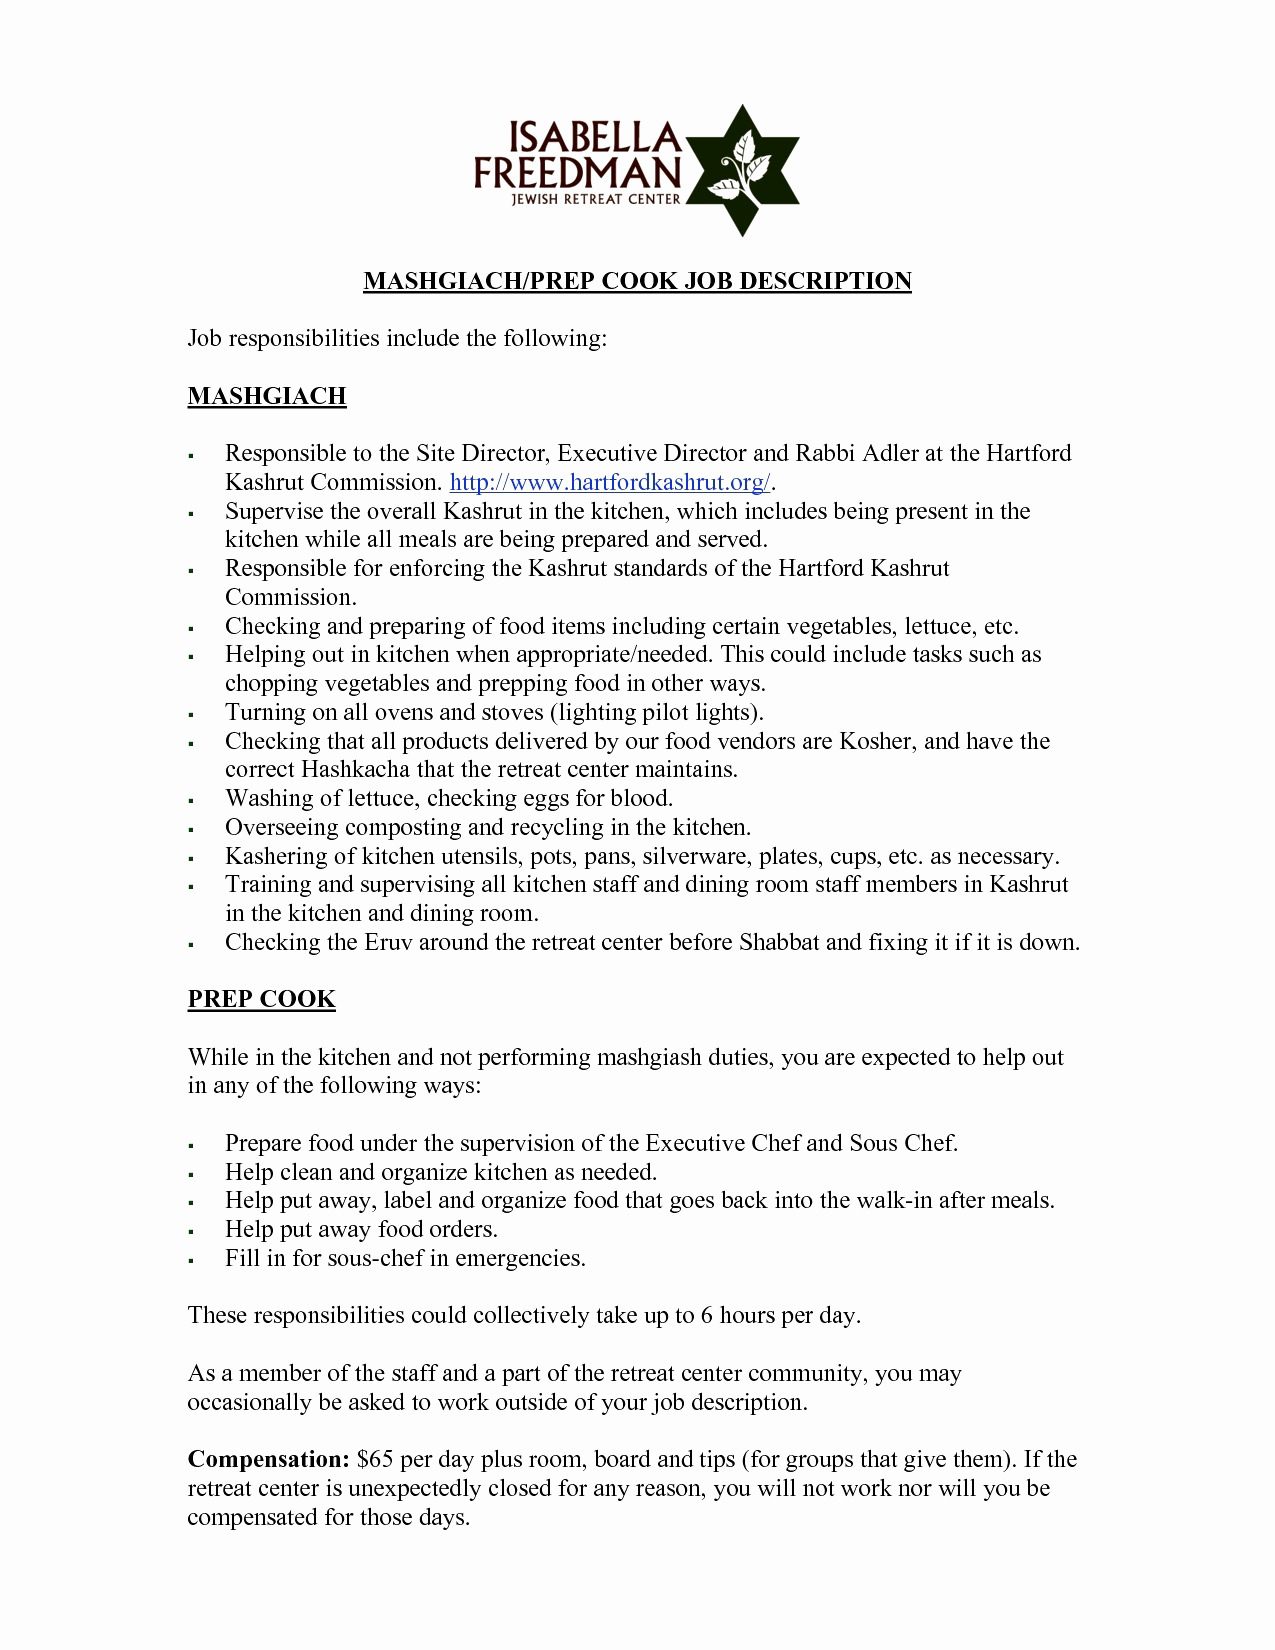 Quick Easy Cover Letter Template - Basic Resume Outline Unique Resume and Cover Letter Template Fresh